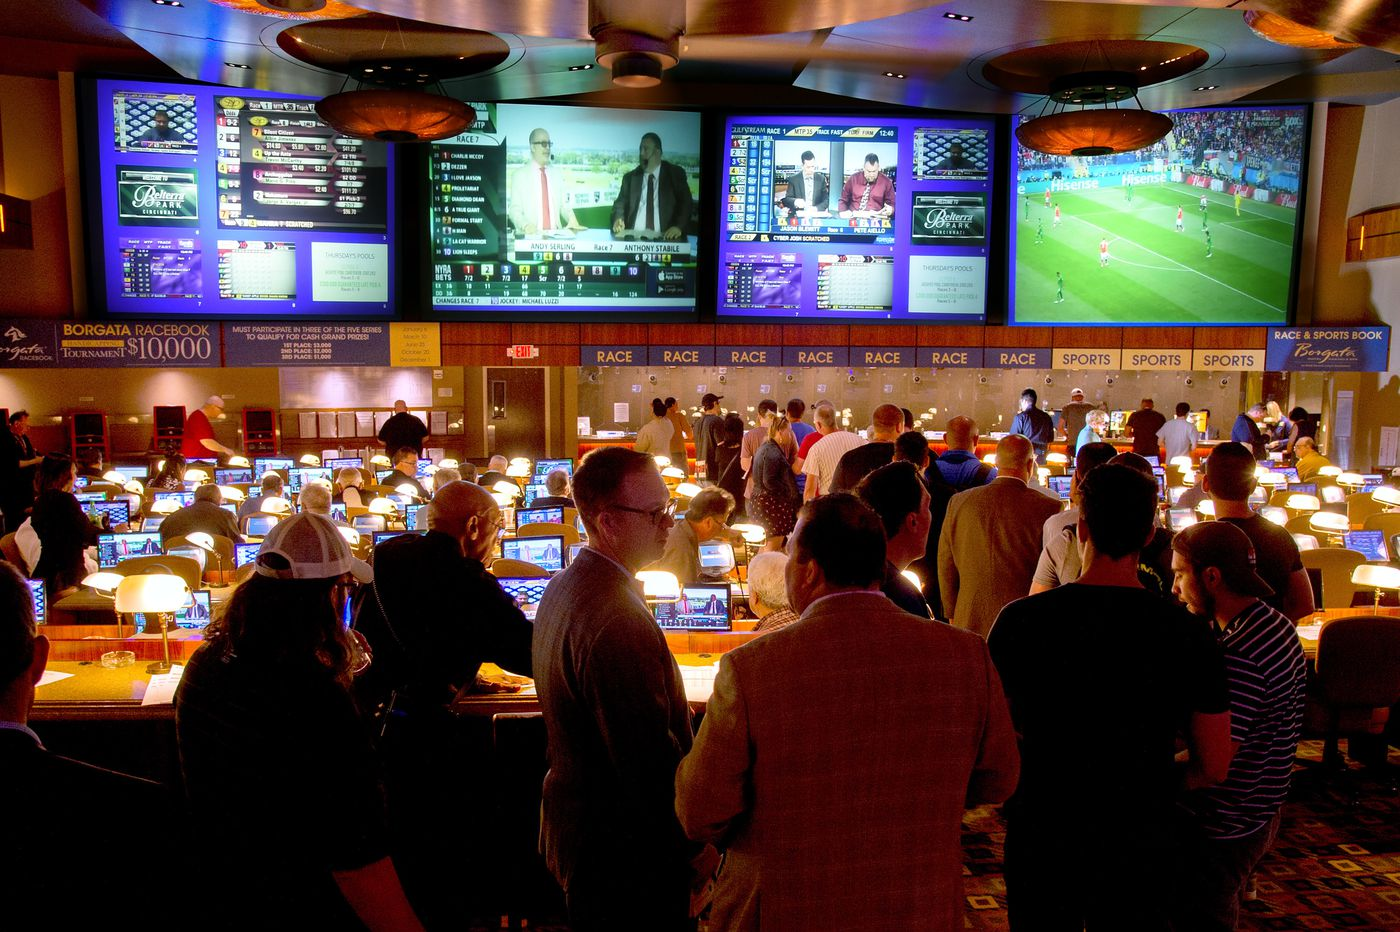 Sports Betting Market Is Booming Worldwide | are William Hill, 888 Holdings, Bet-at-home.com, Bwin.Party, Ladbrokes